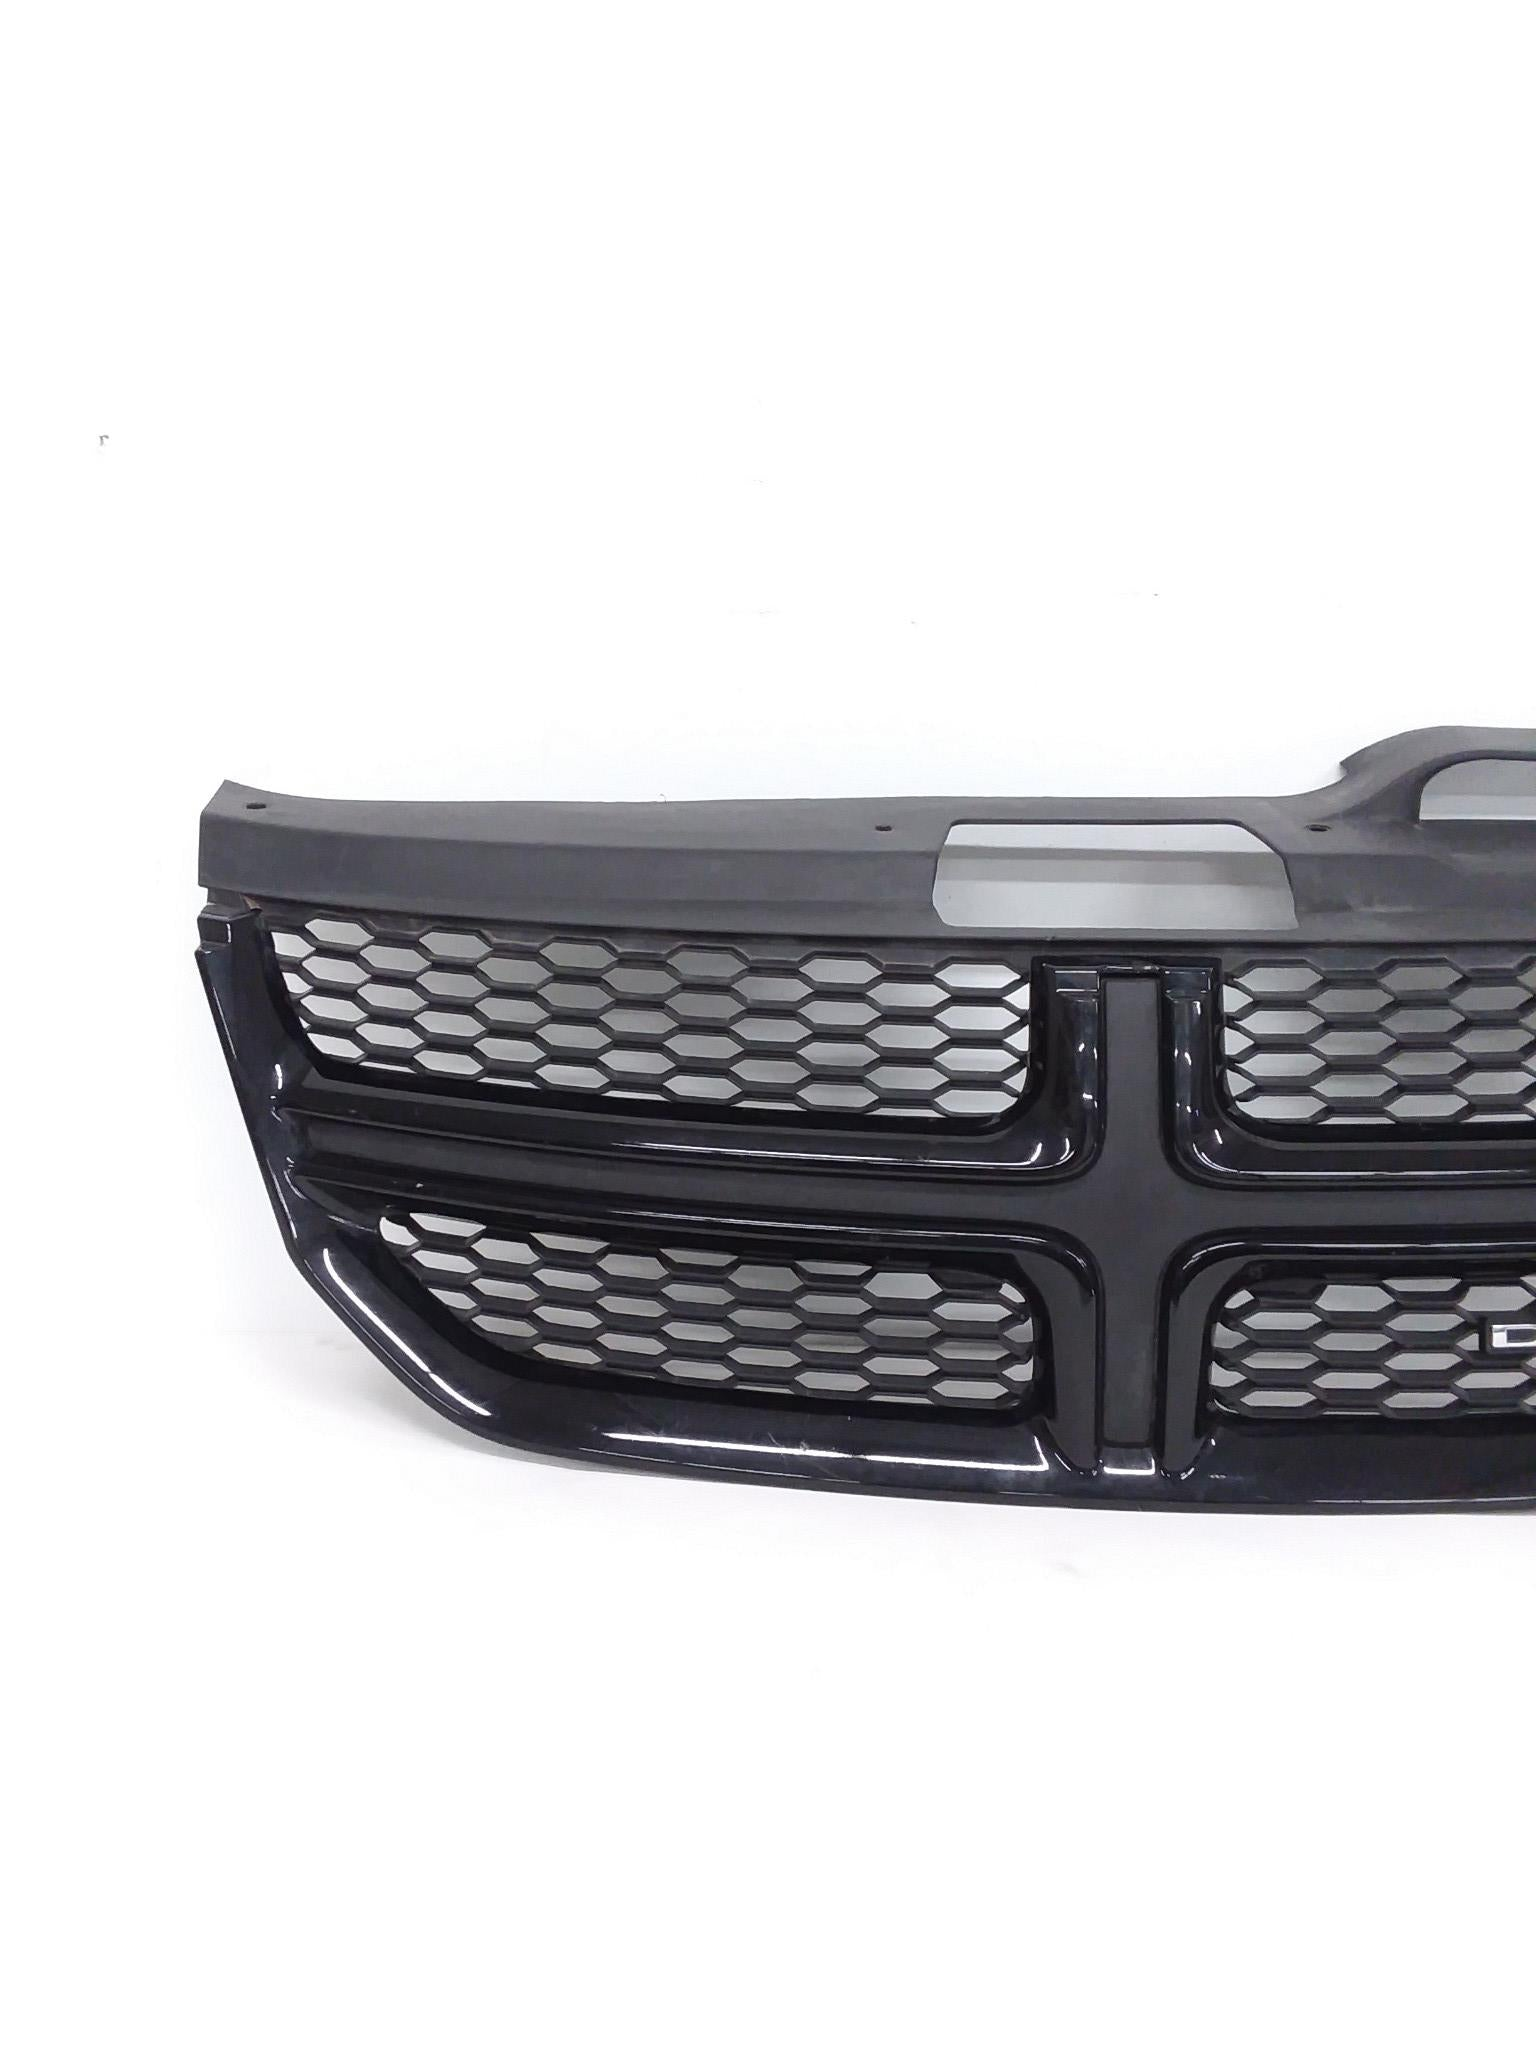 DODGE JOURNEY FRONT UPPER GRILLE WITH EMBLEM 2011 2012 2013 2017 68080192 OEM